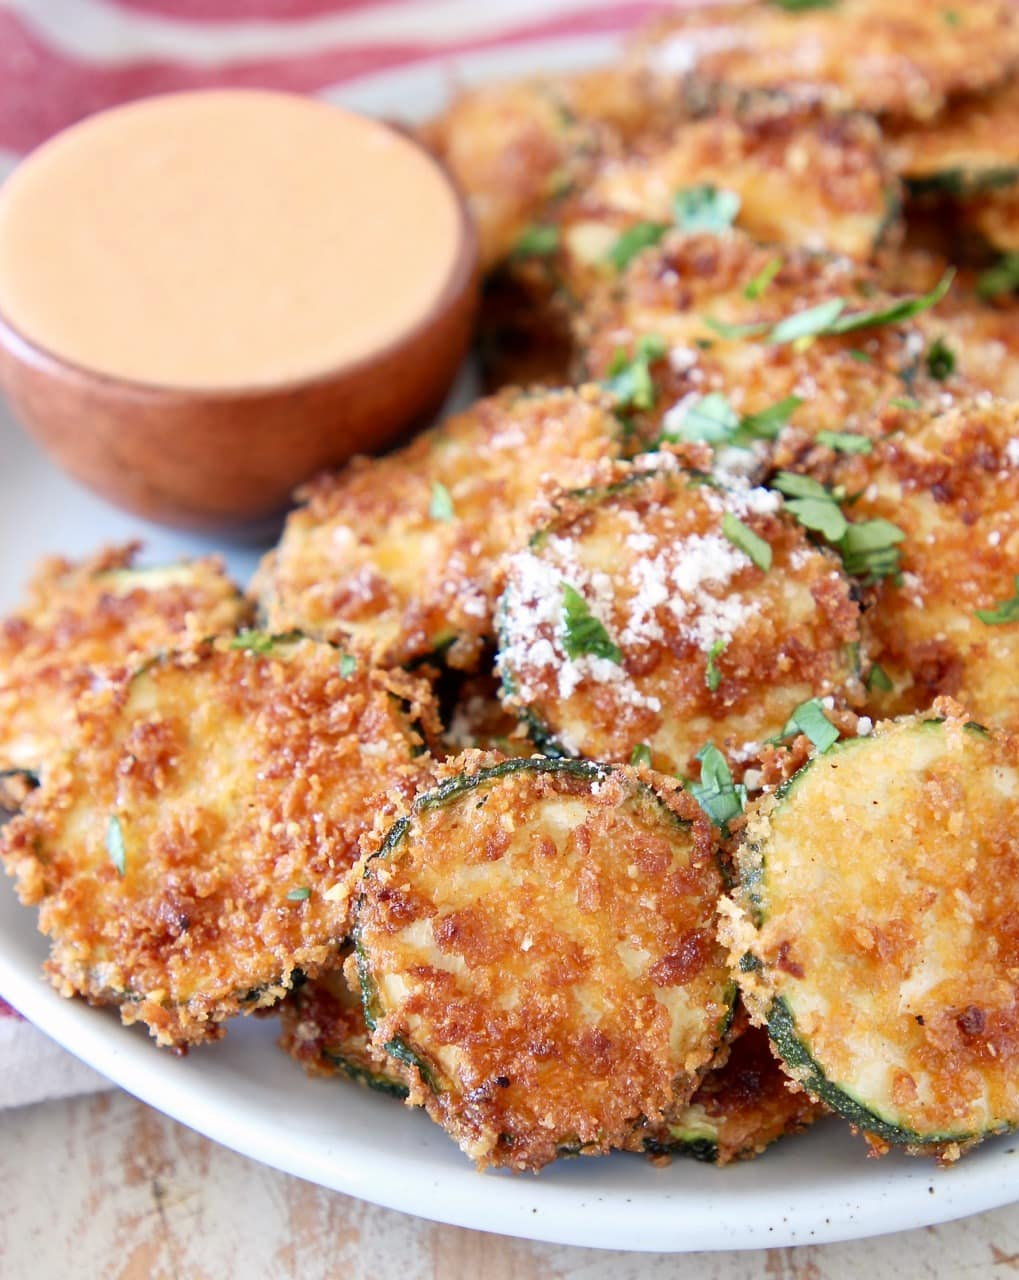 Crispy Fried Zucchini Chips with Parmesan Cheese and Buffalo Blue Cheese Sauce